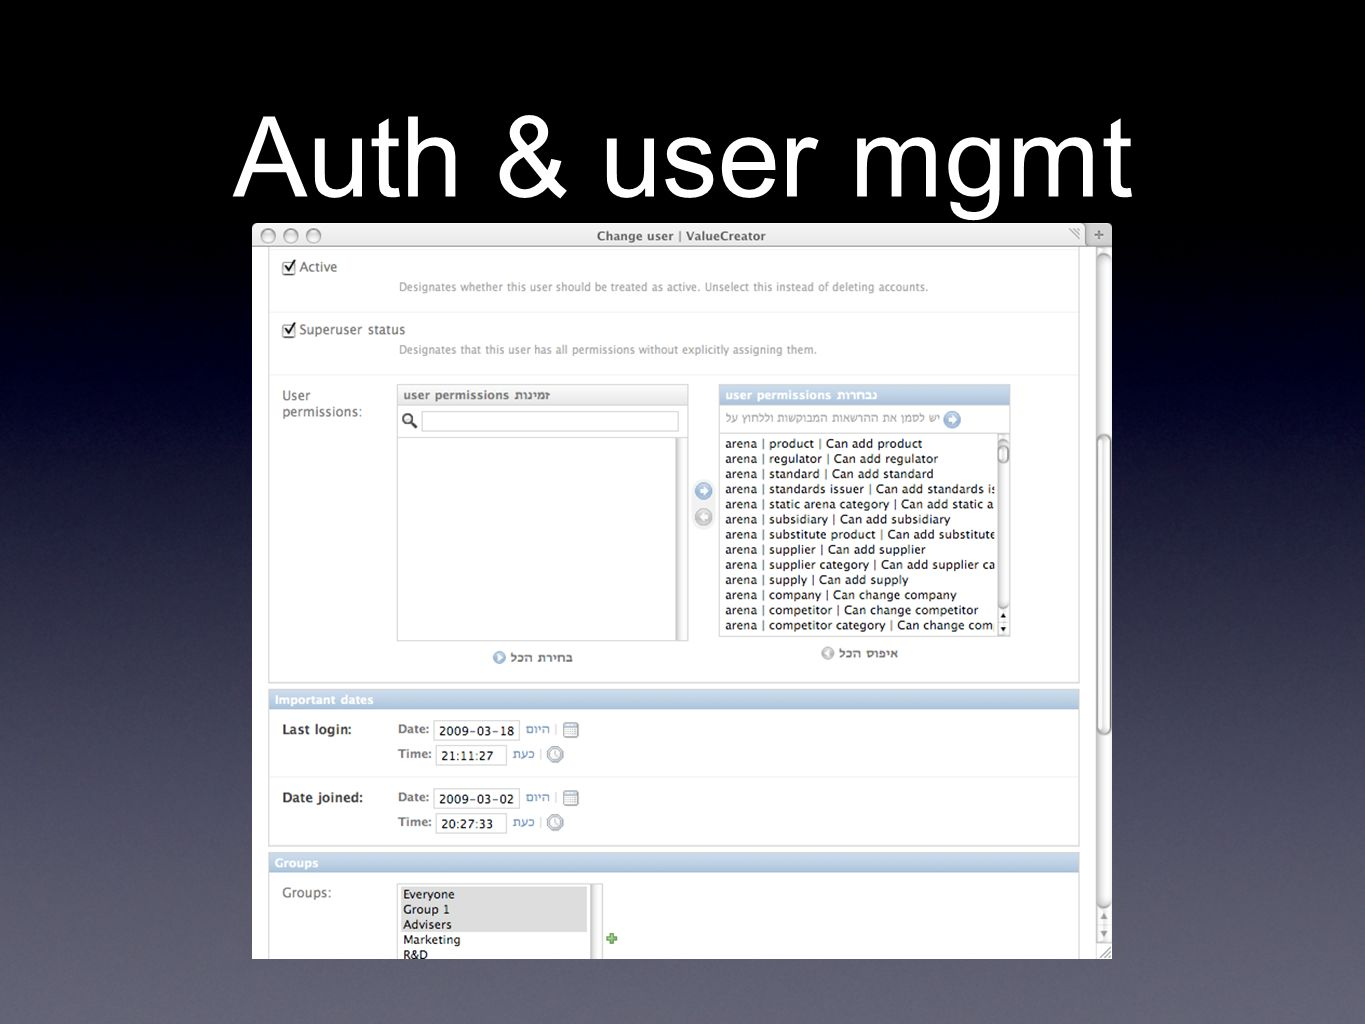 Auth & user mgmt